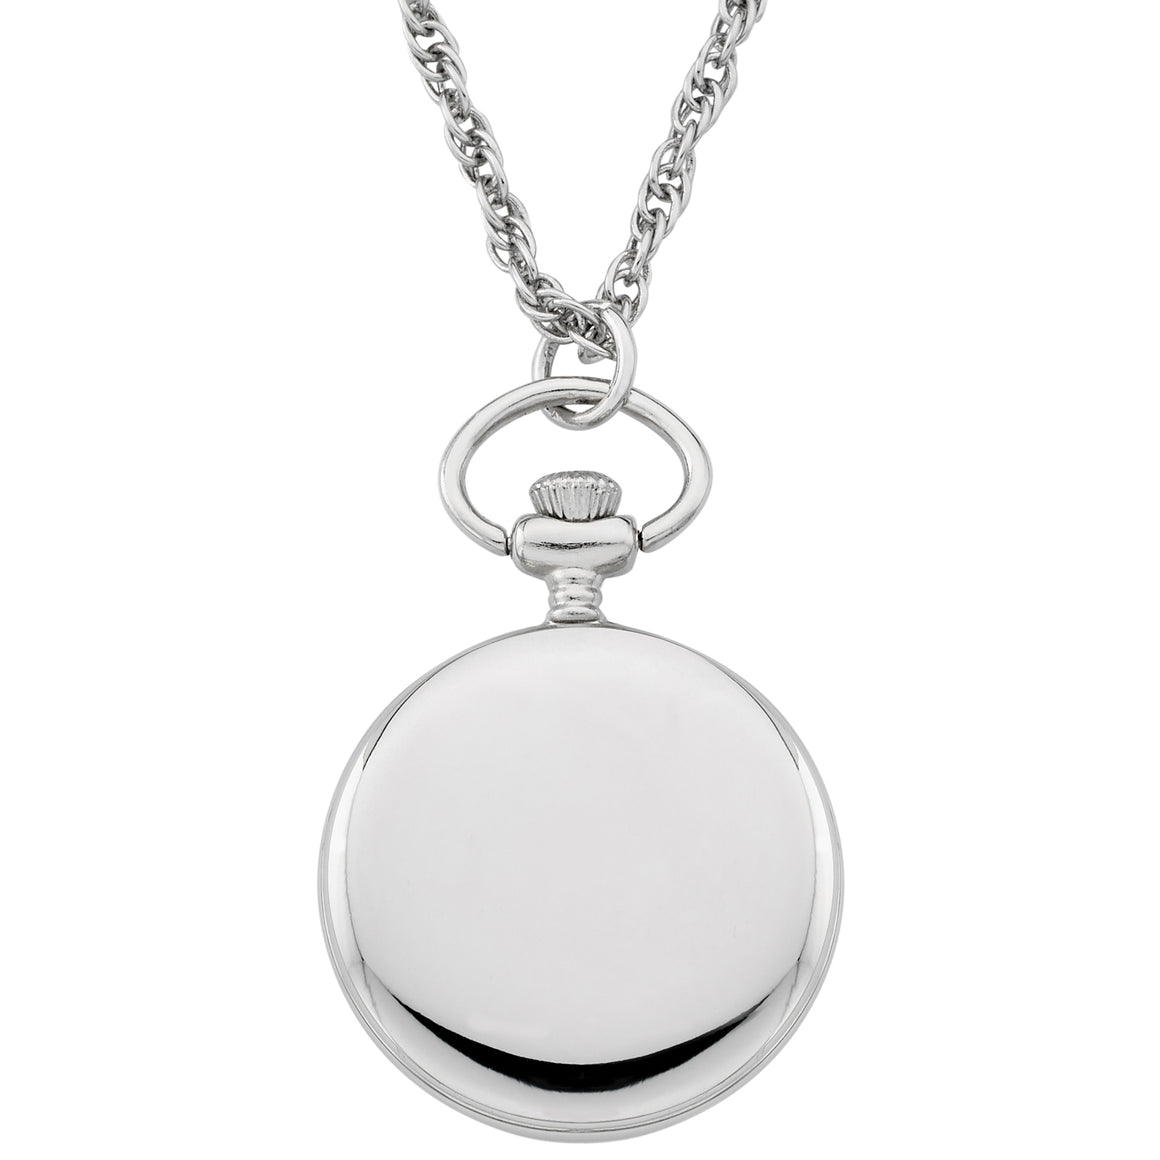 Gotham Women's Silver-Tone Open Face Pendant Watch With Chain # GWC14135SBA - Gotham Watch